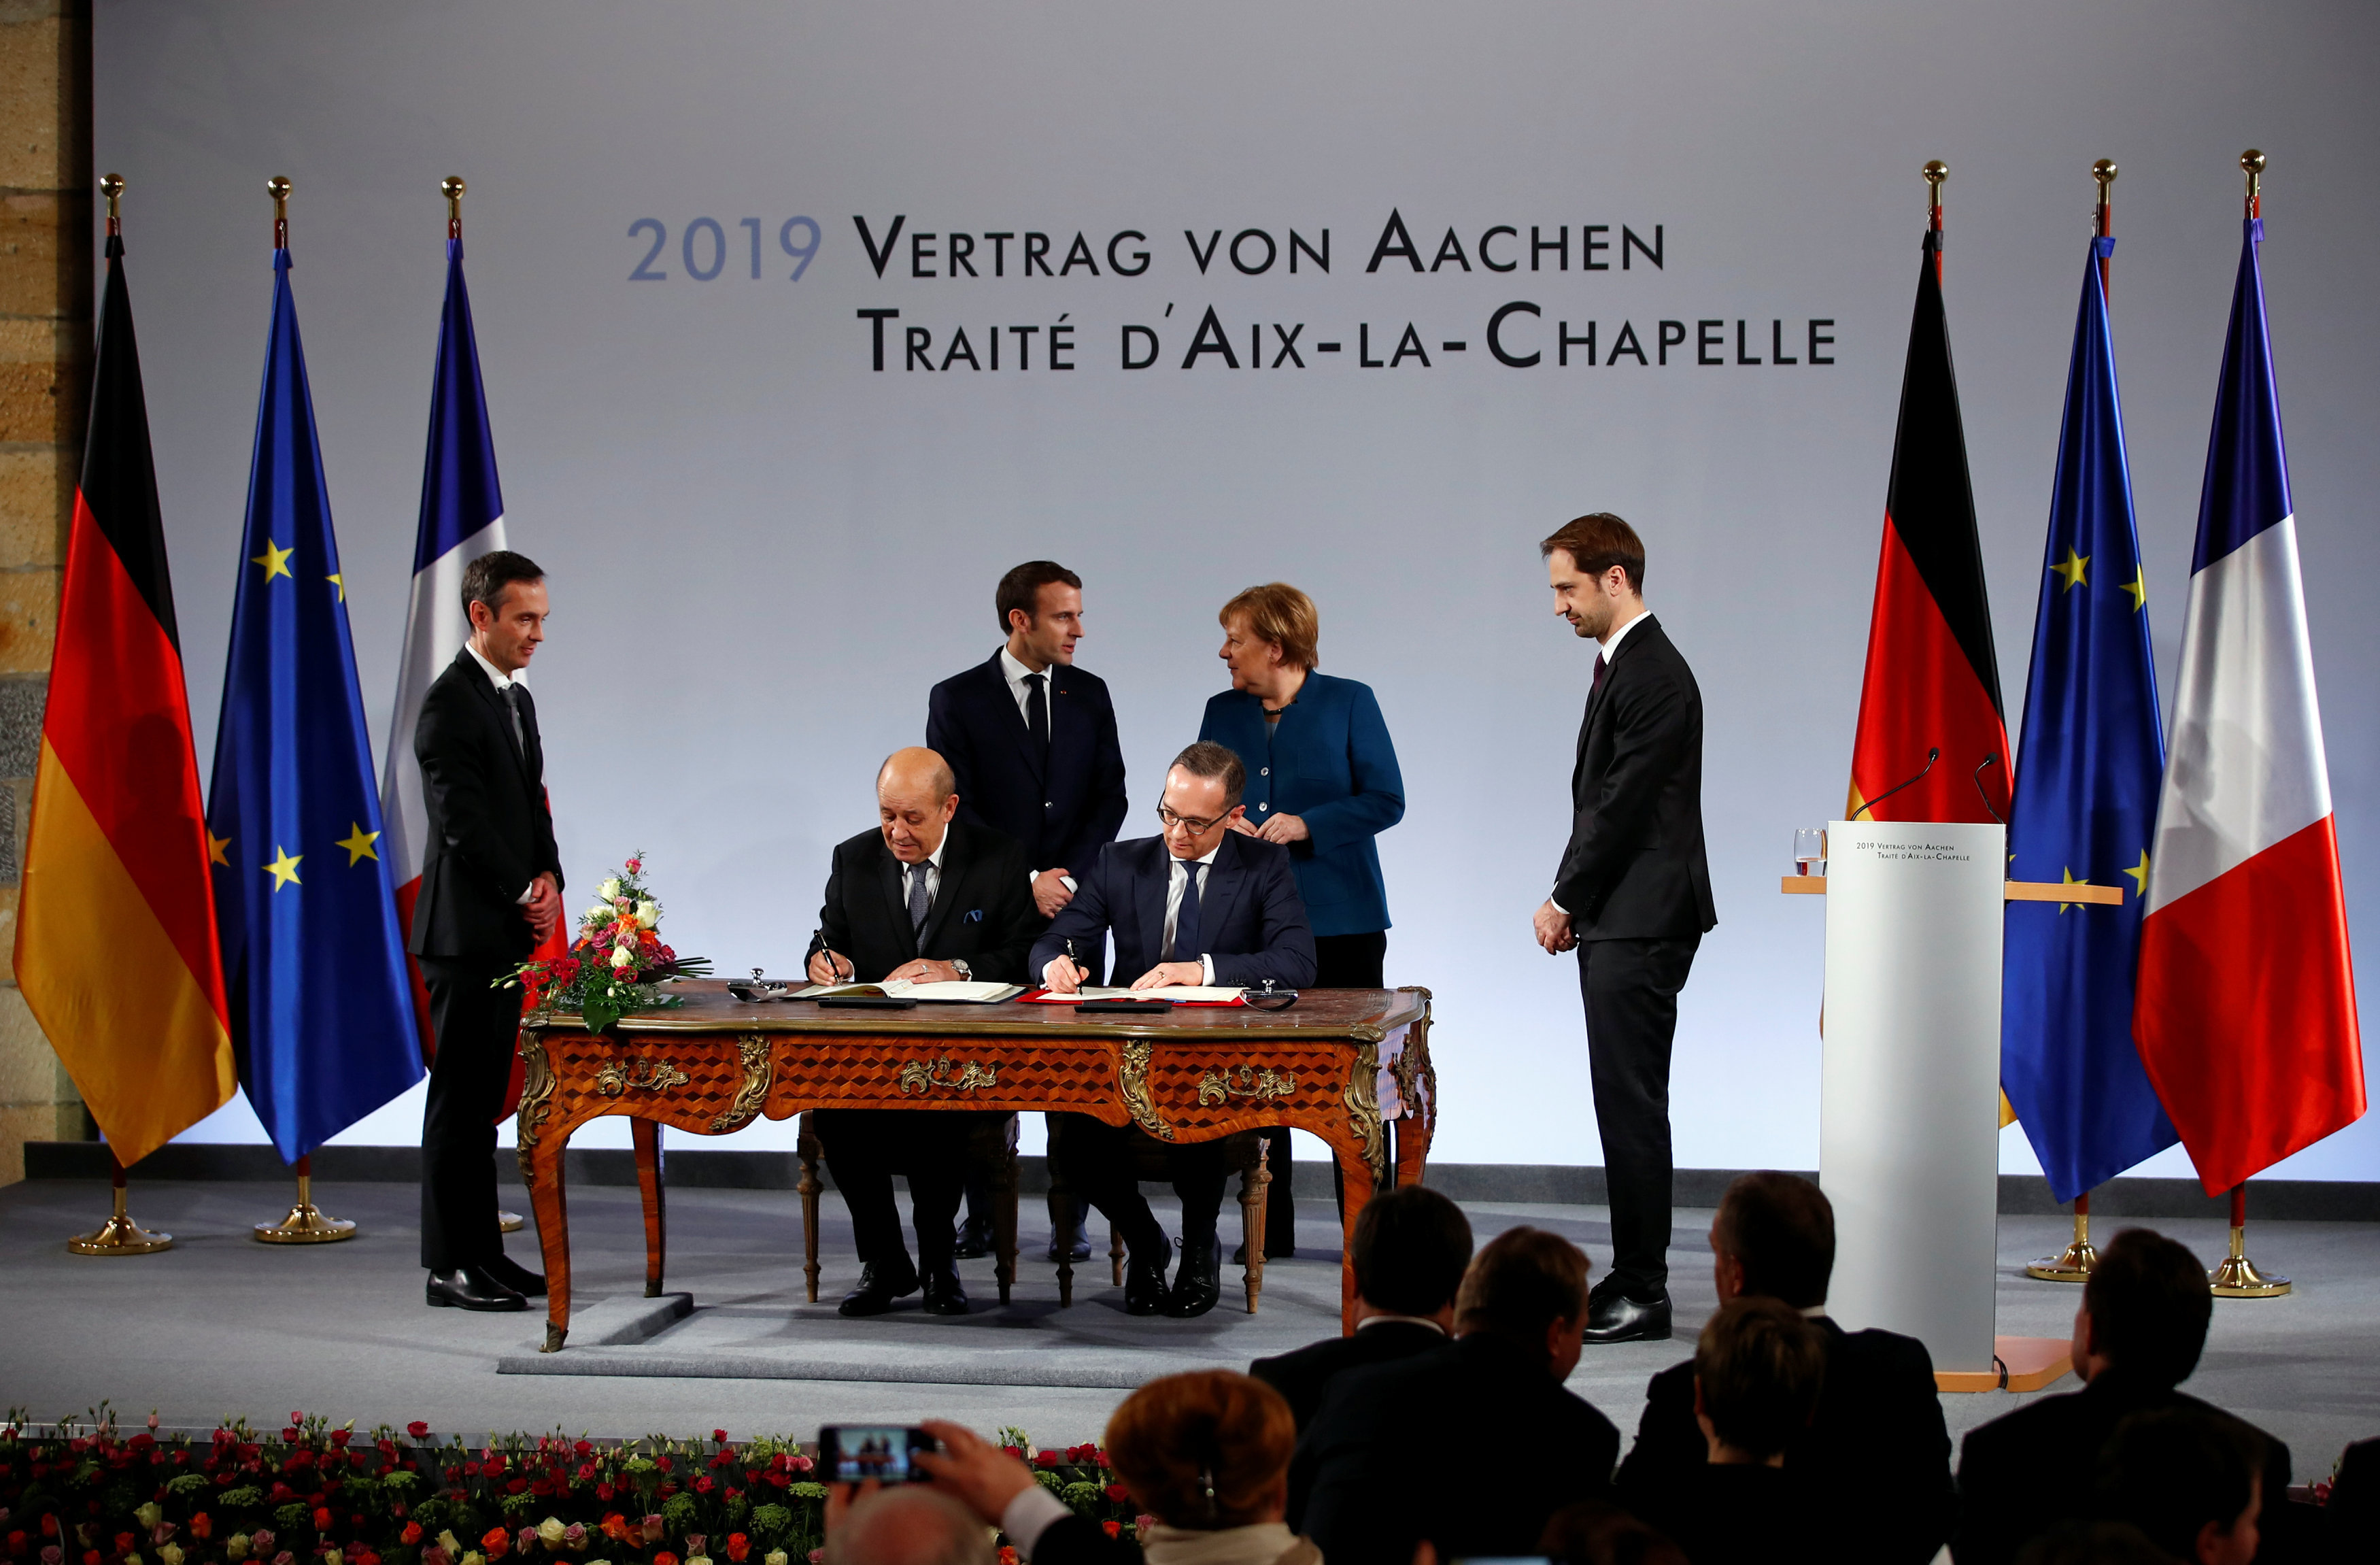 French Foreign Minister Jean-Yves Le Drian and his German counterpart Heiko Maas sign a new agreement on bilateral cooperation and integration, known as Treaty of Aachen, as German Chancellor Angela Merkel and French President Emmanuel Macron look on, in Aachen, Germany, January 22, 2019